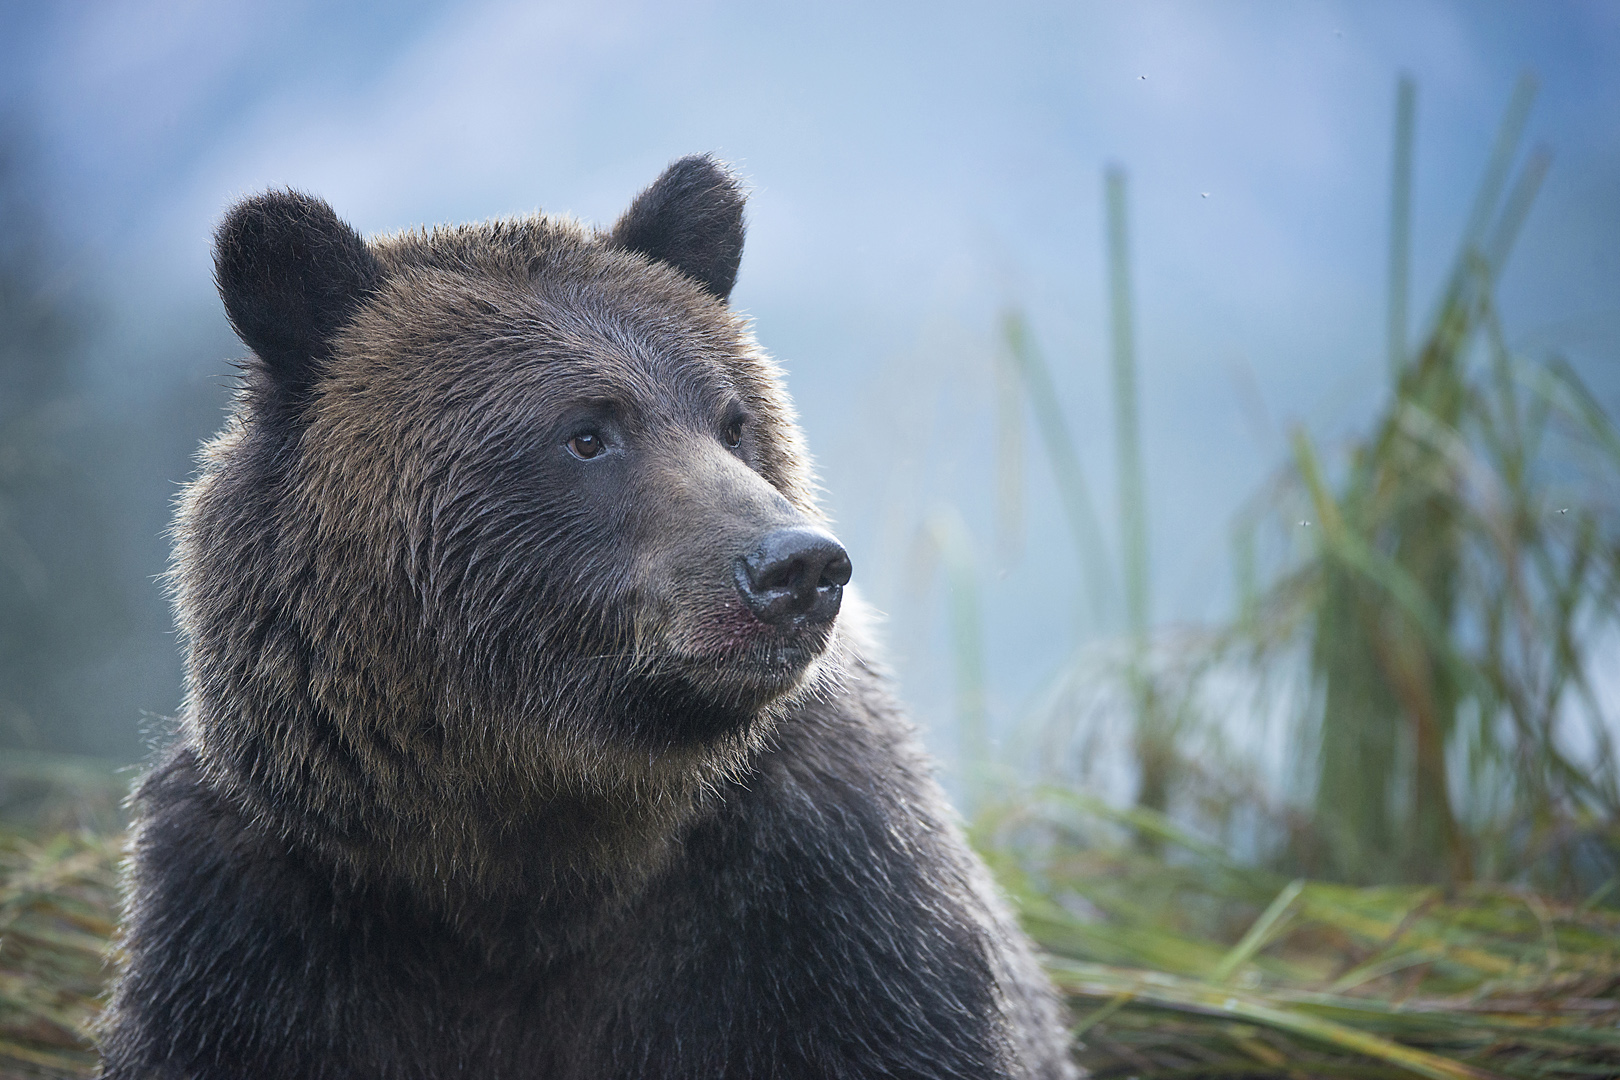 grizzly in the great bear rainforest in CPAWS Capture the Wild Photo Contest